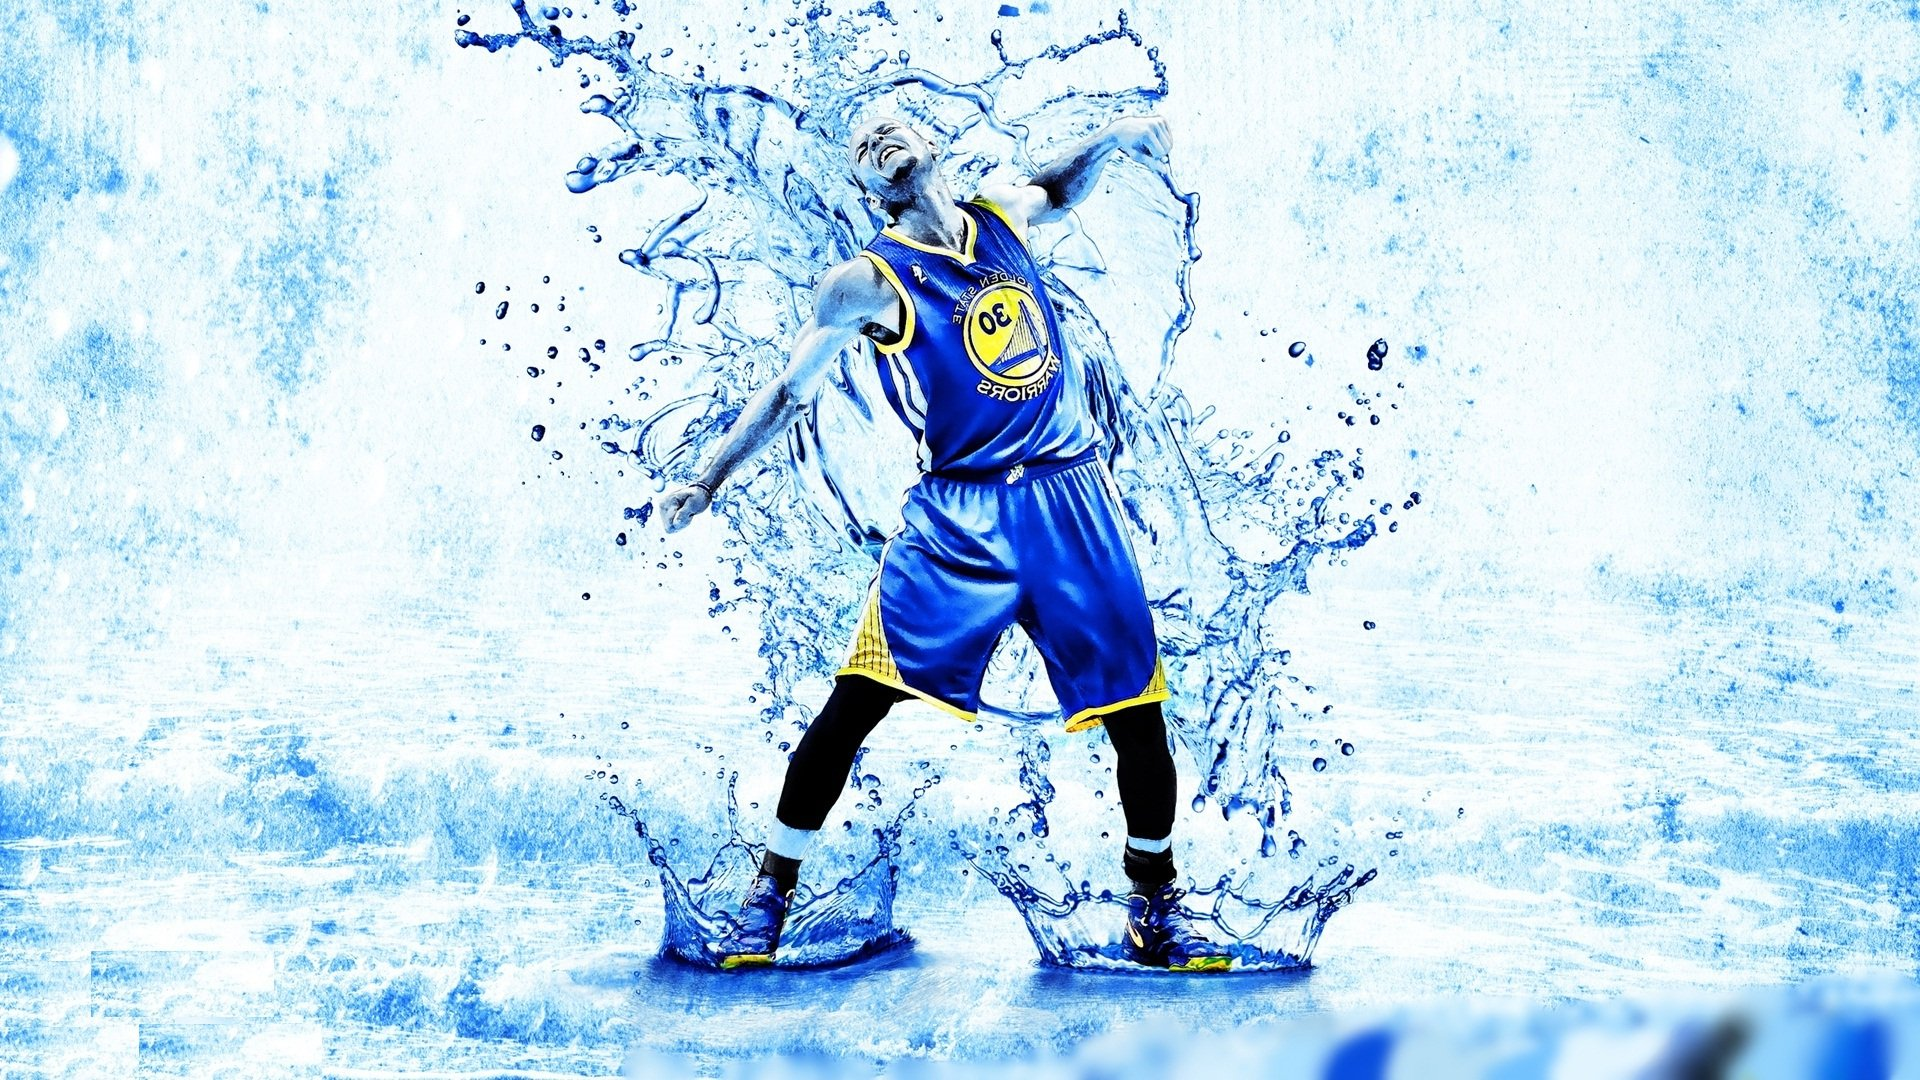 Stephen Curry HD Wallpapers Download Desktop Wallpaper Images 1920x1080